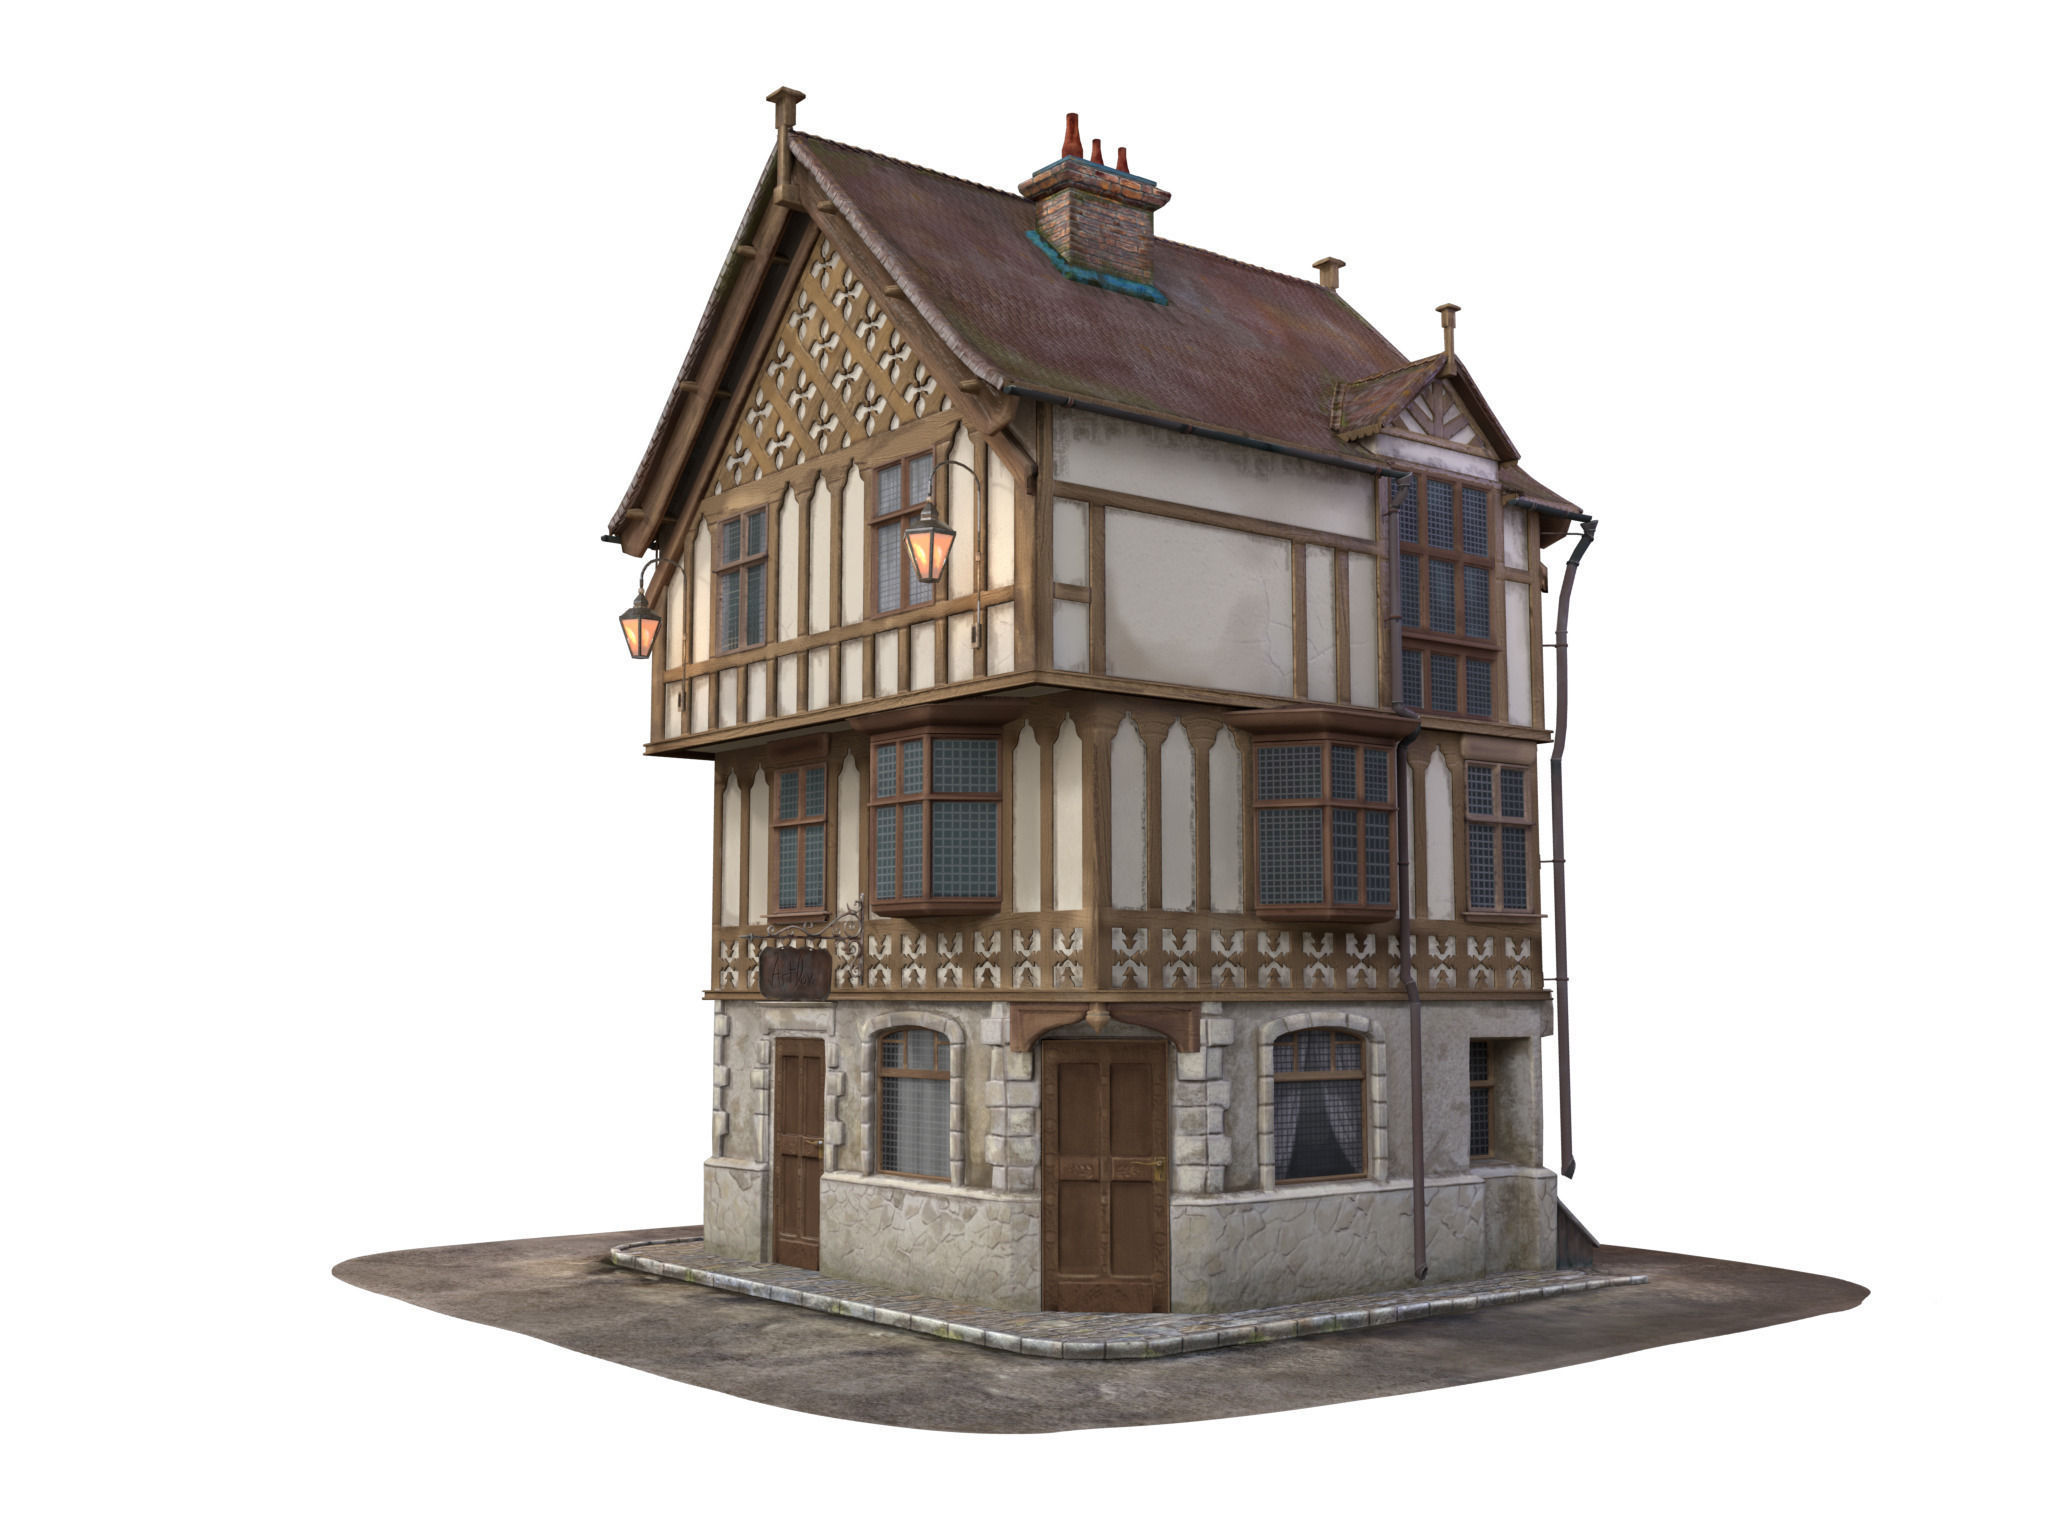 Medieval house 3d model max obj lxo lxl mtl 3d model house design